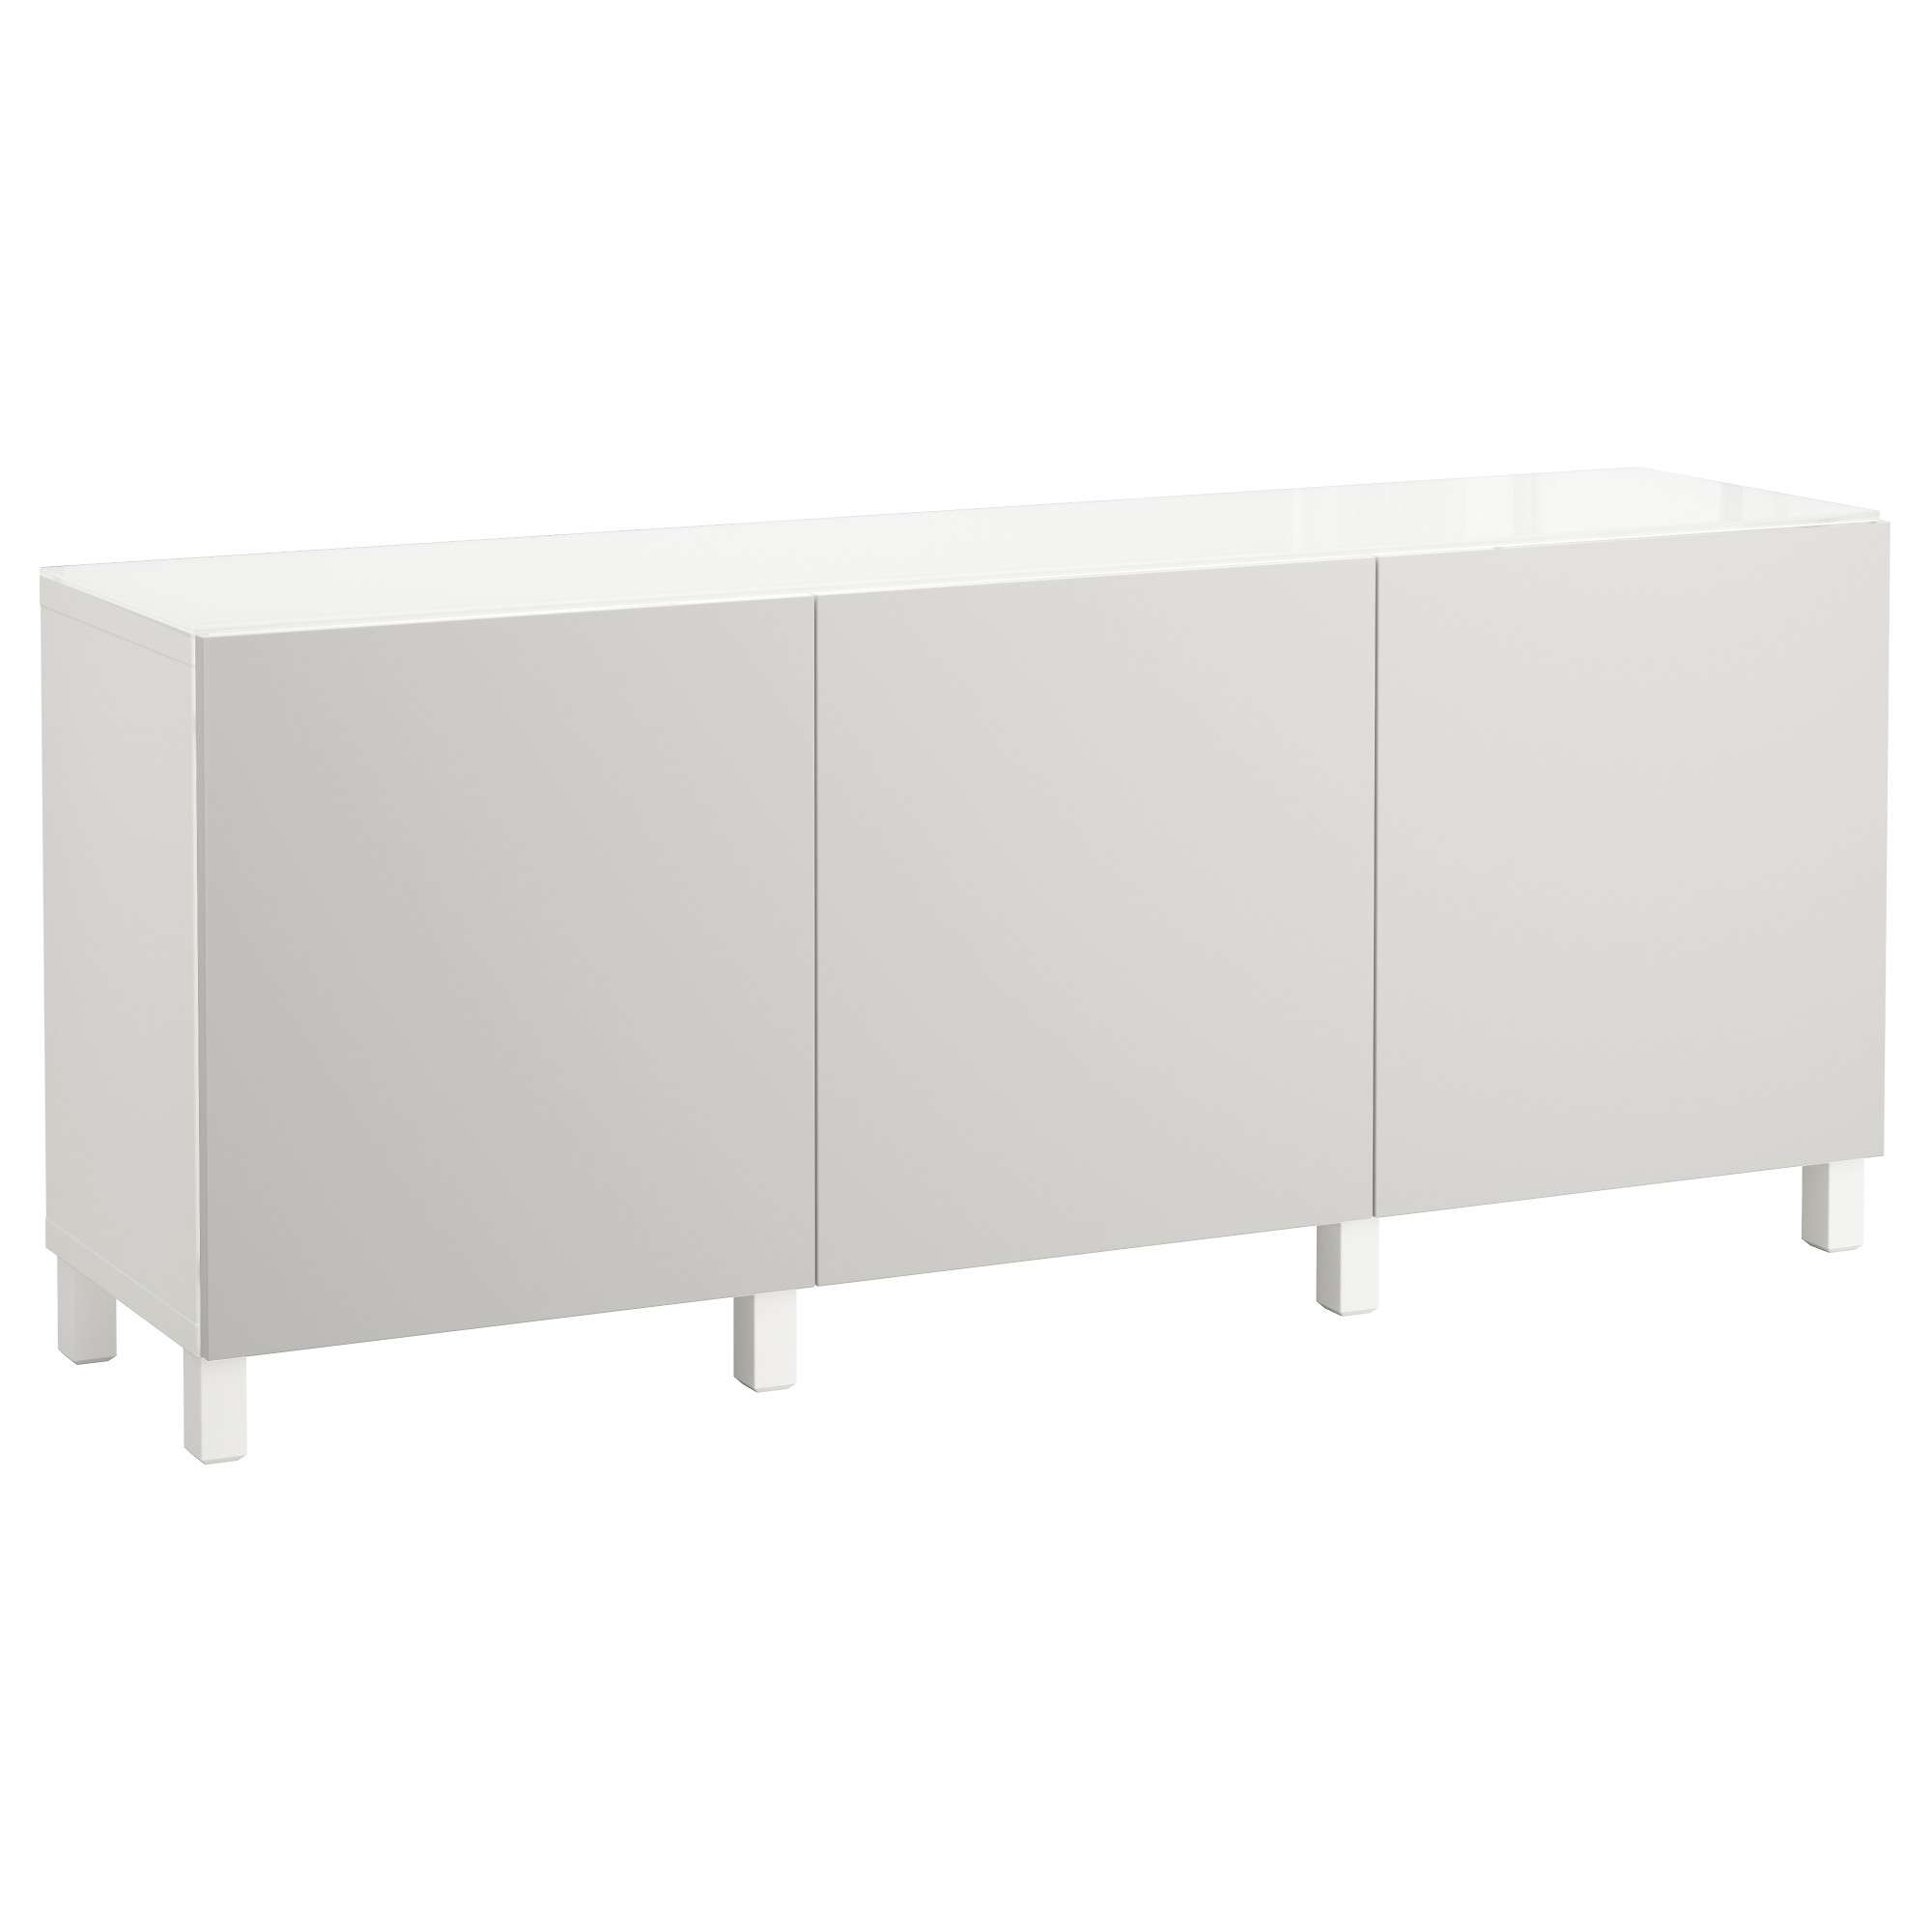 Occasional Tables & Hall Table | Ikea Within Slim White Sideboards (View 7 of 20)